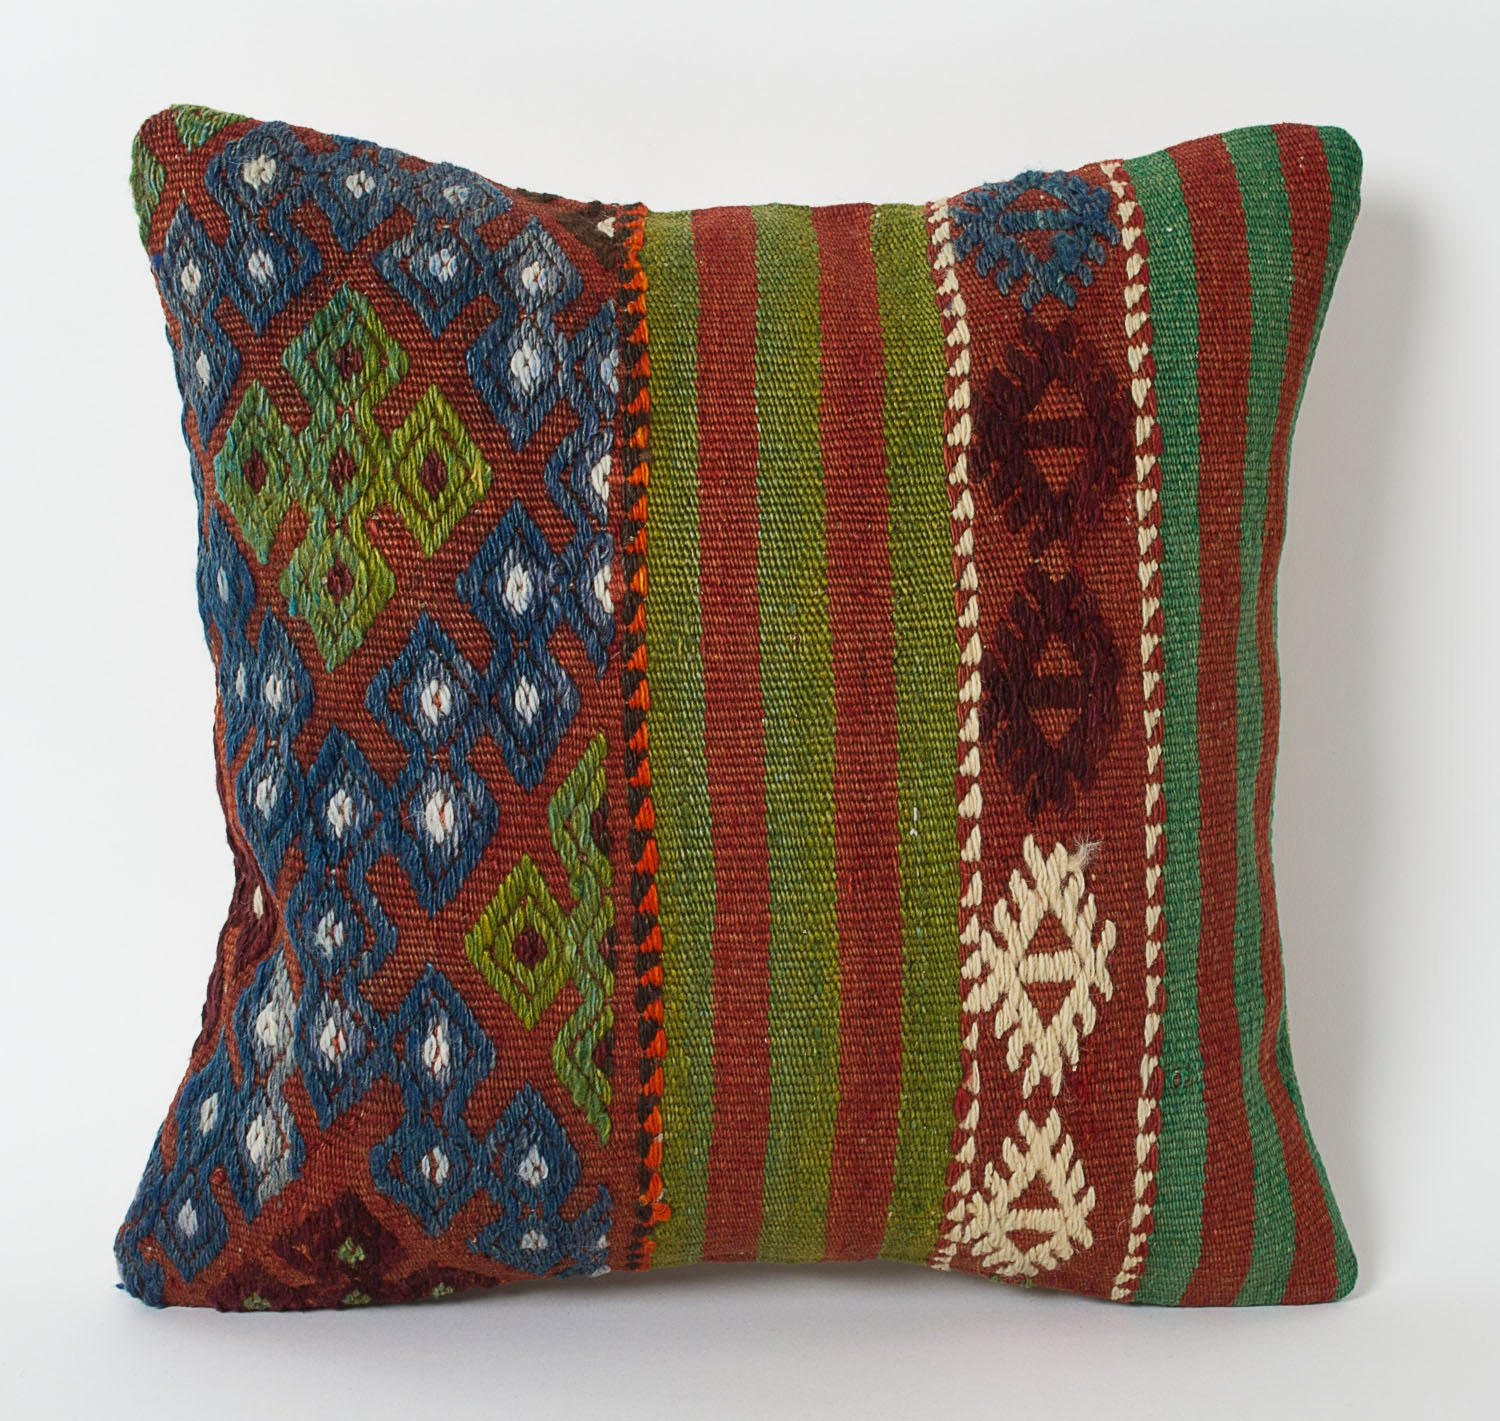 Kilim Pillows Covers Navy Blue And Green Kilim Pillows